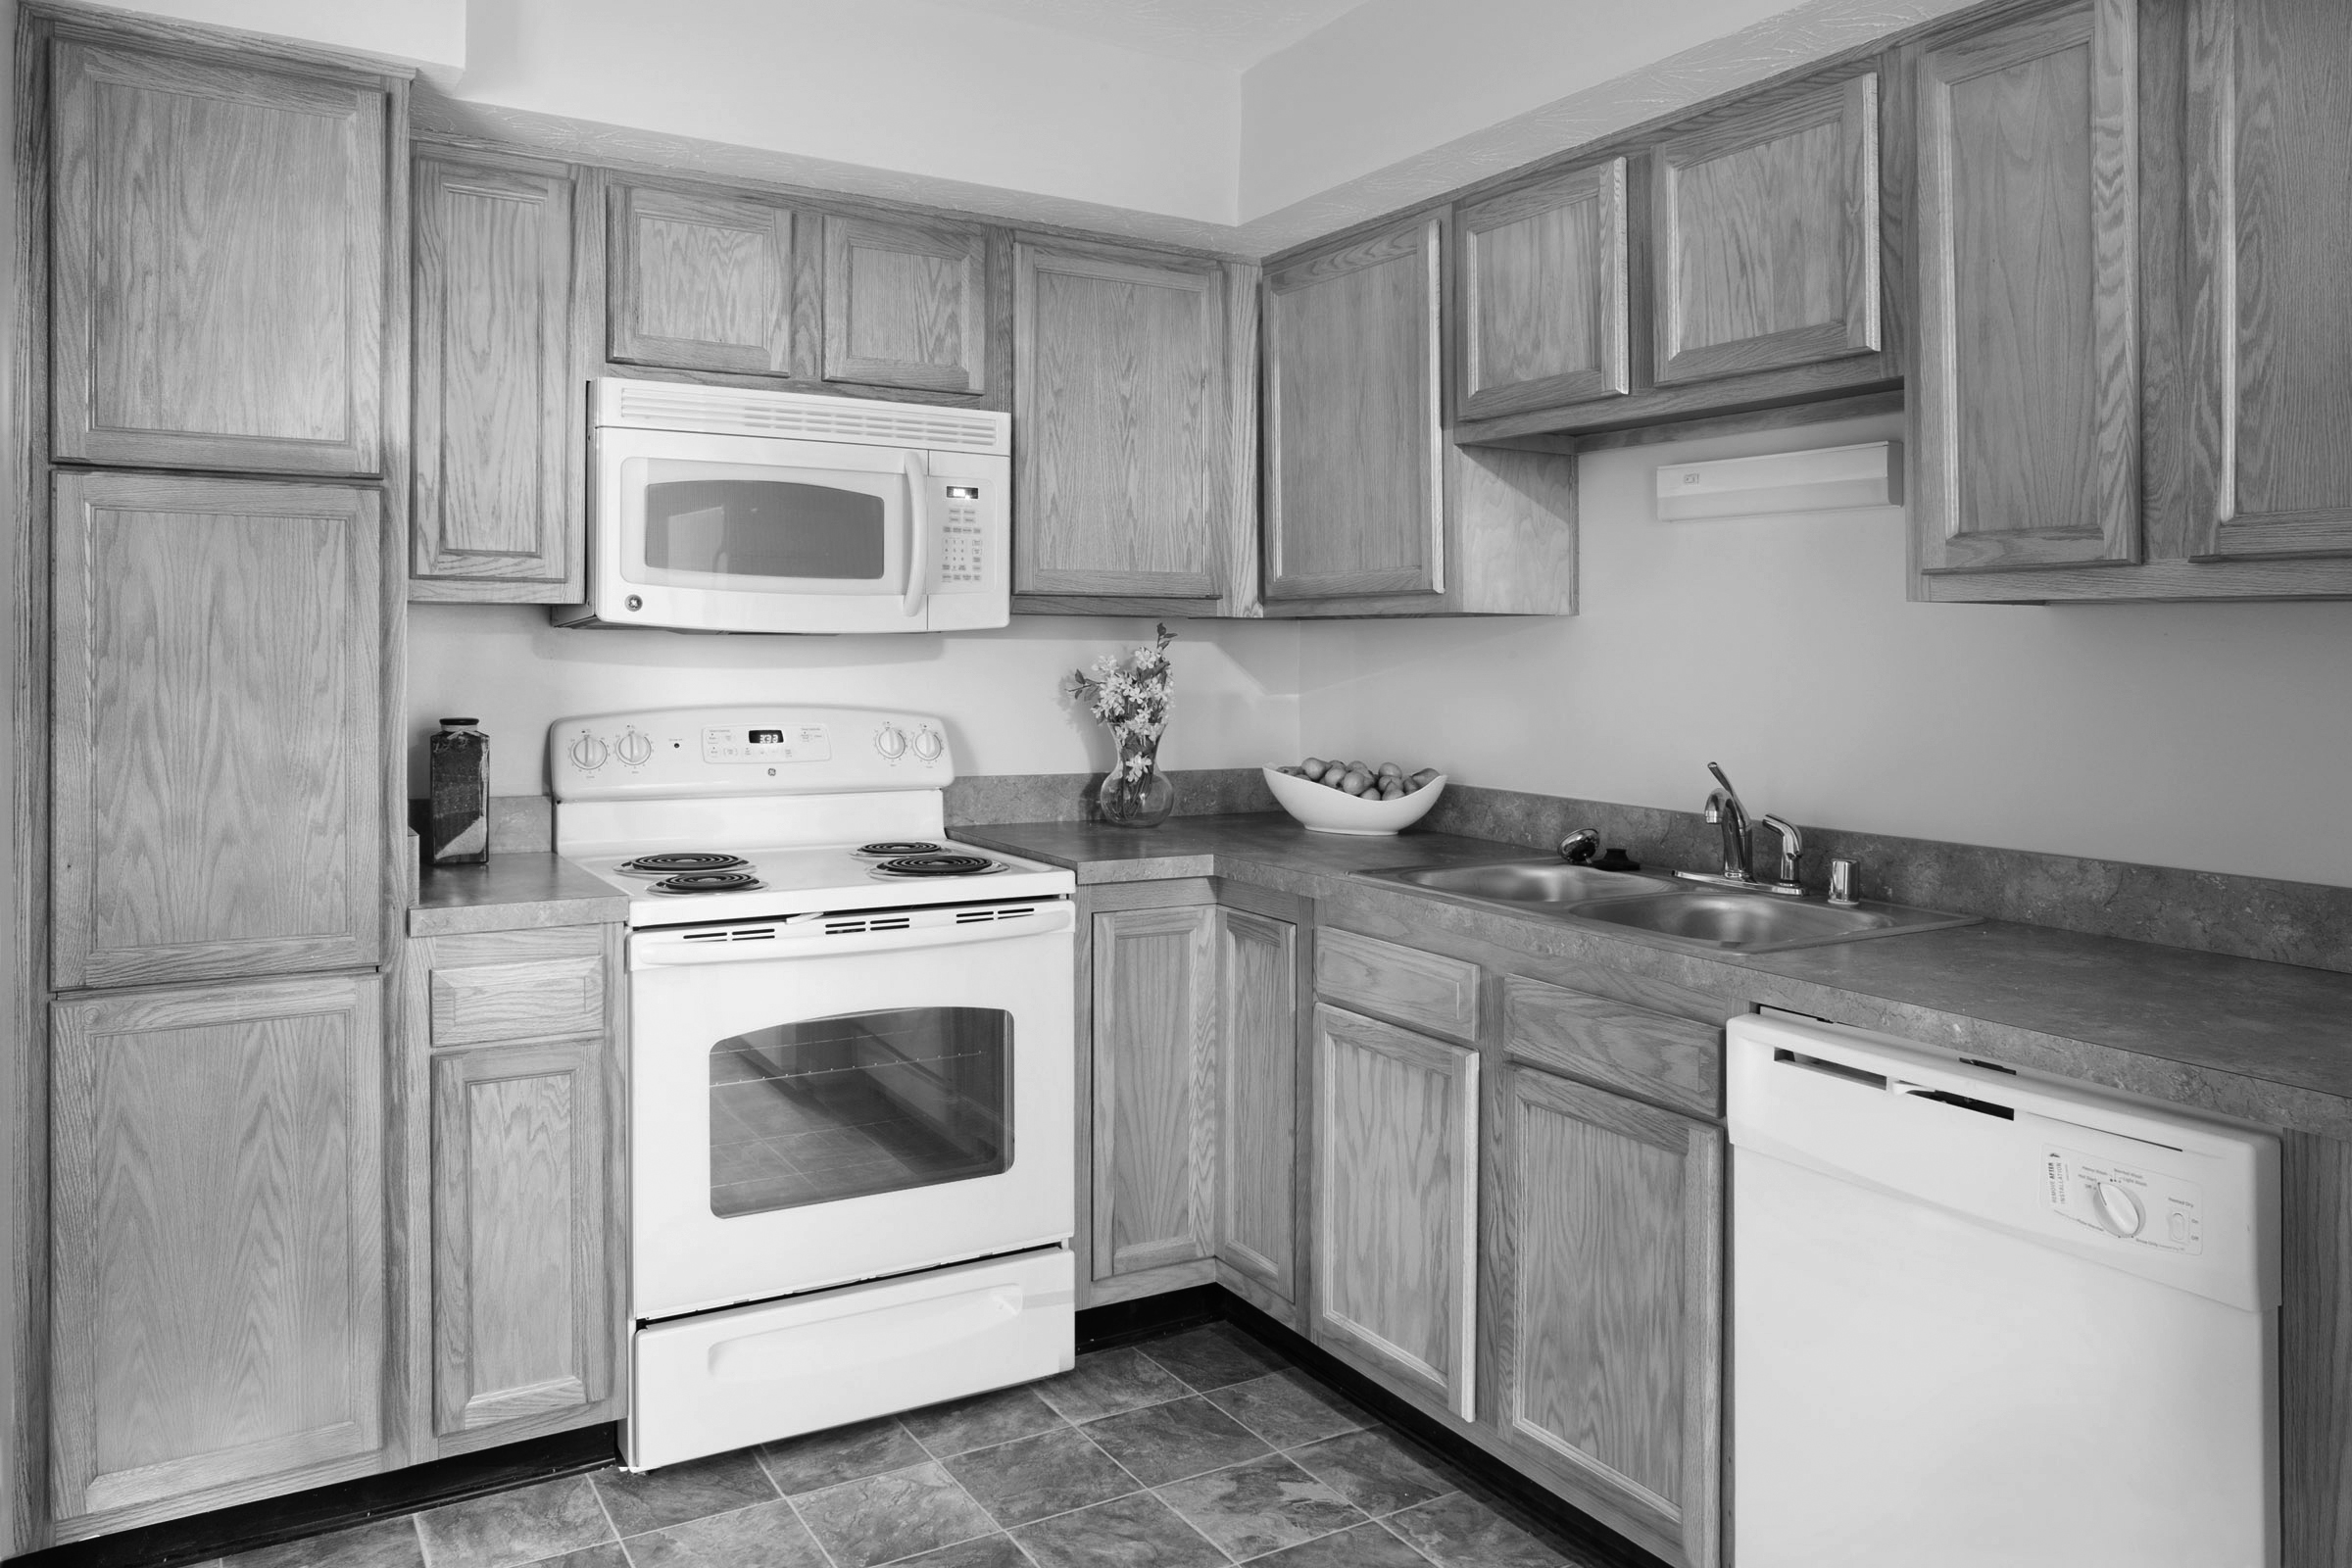 Chadwood Kitchen Cabinets in Apartment